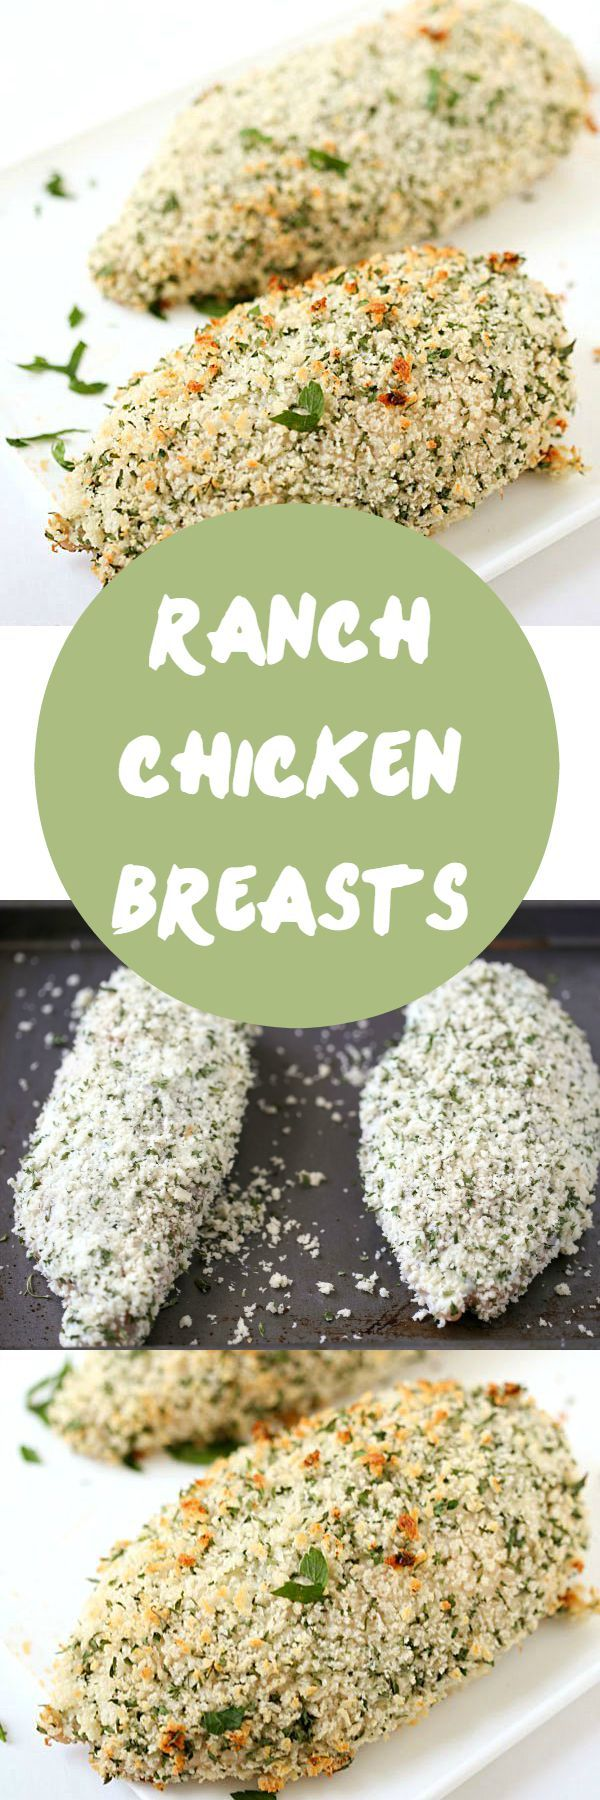 Ranch Chicken Breasts - Juicy and tender on the interior flavorful and crunchy on the exterior. Made with only 4-ingredients! A family favorite. We love our chicken recipes. Skip the chicken casserole and make these instead!